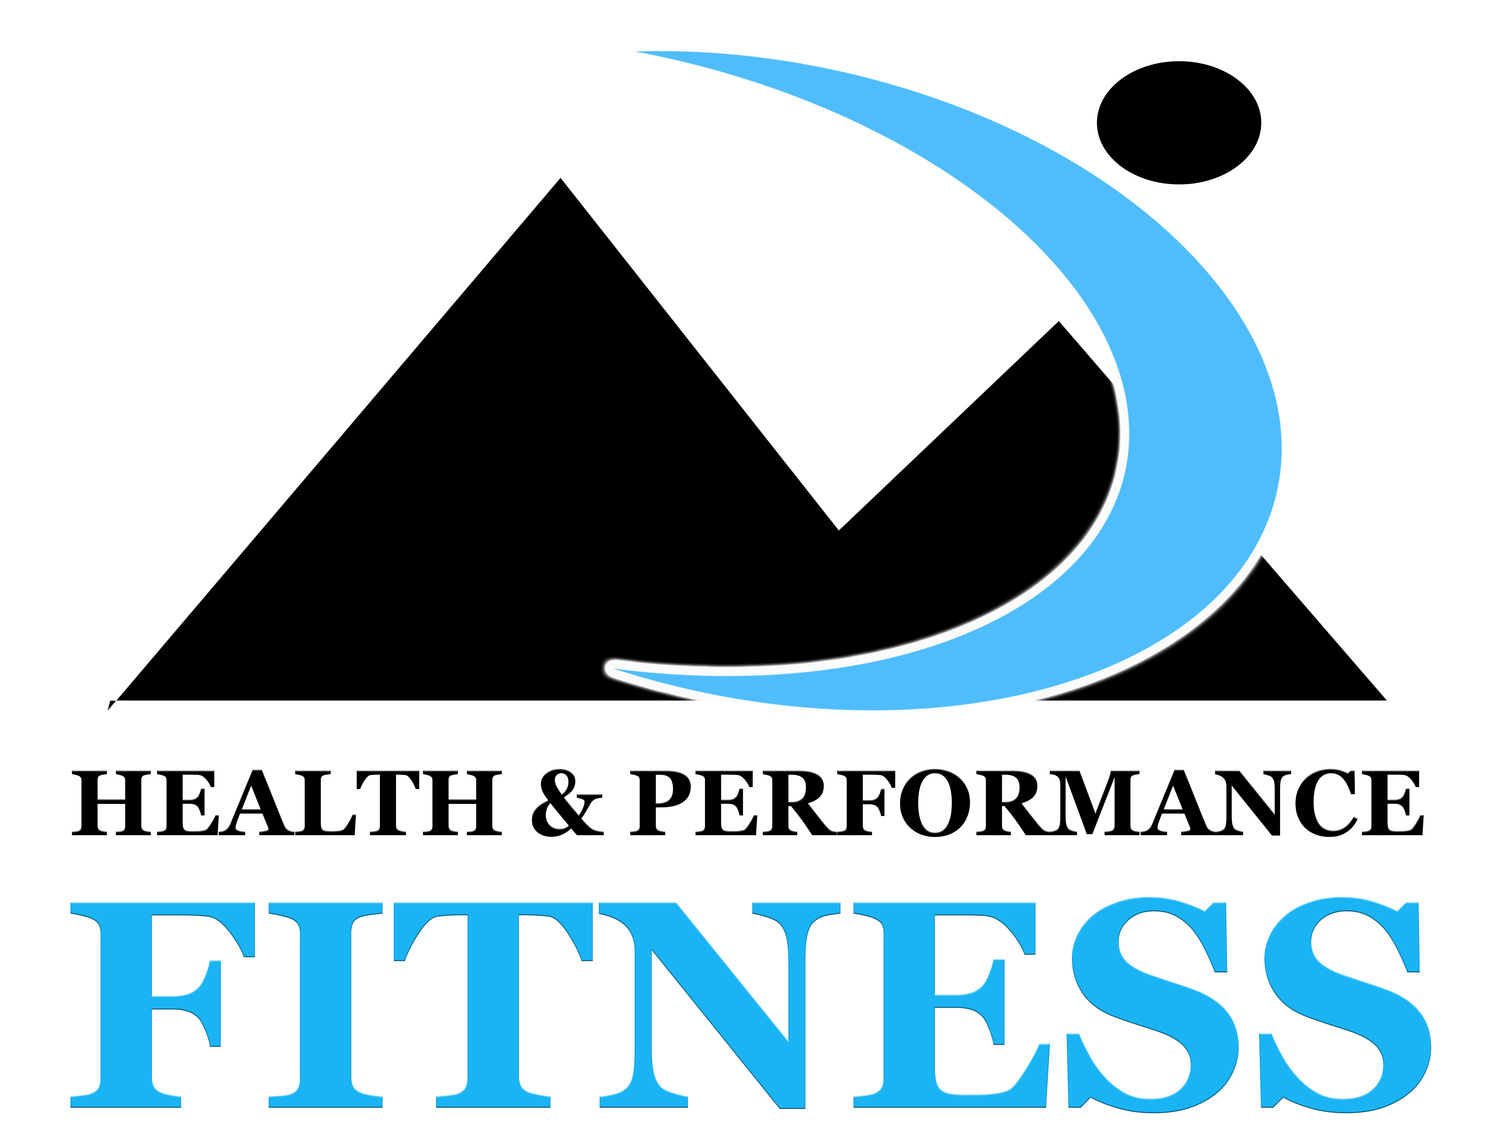 Health & Performance Fitness | Health & Fitness Training - Queenstown, New Zealand